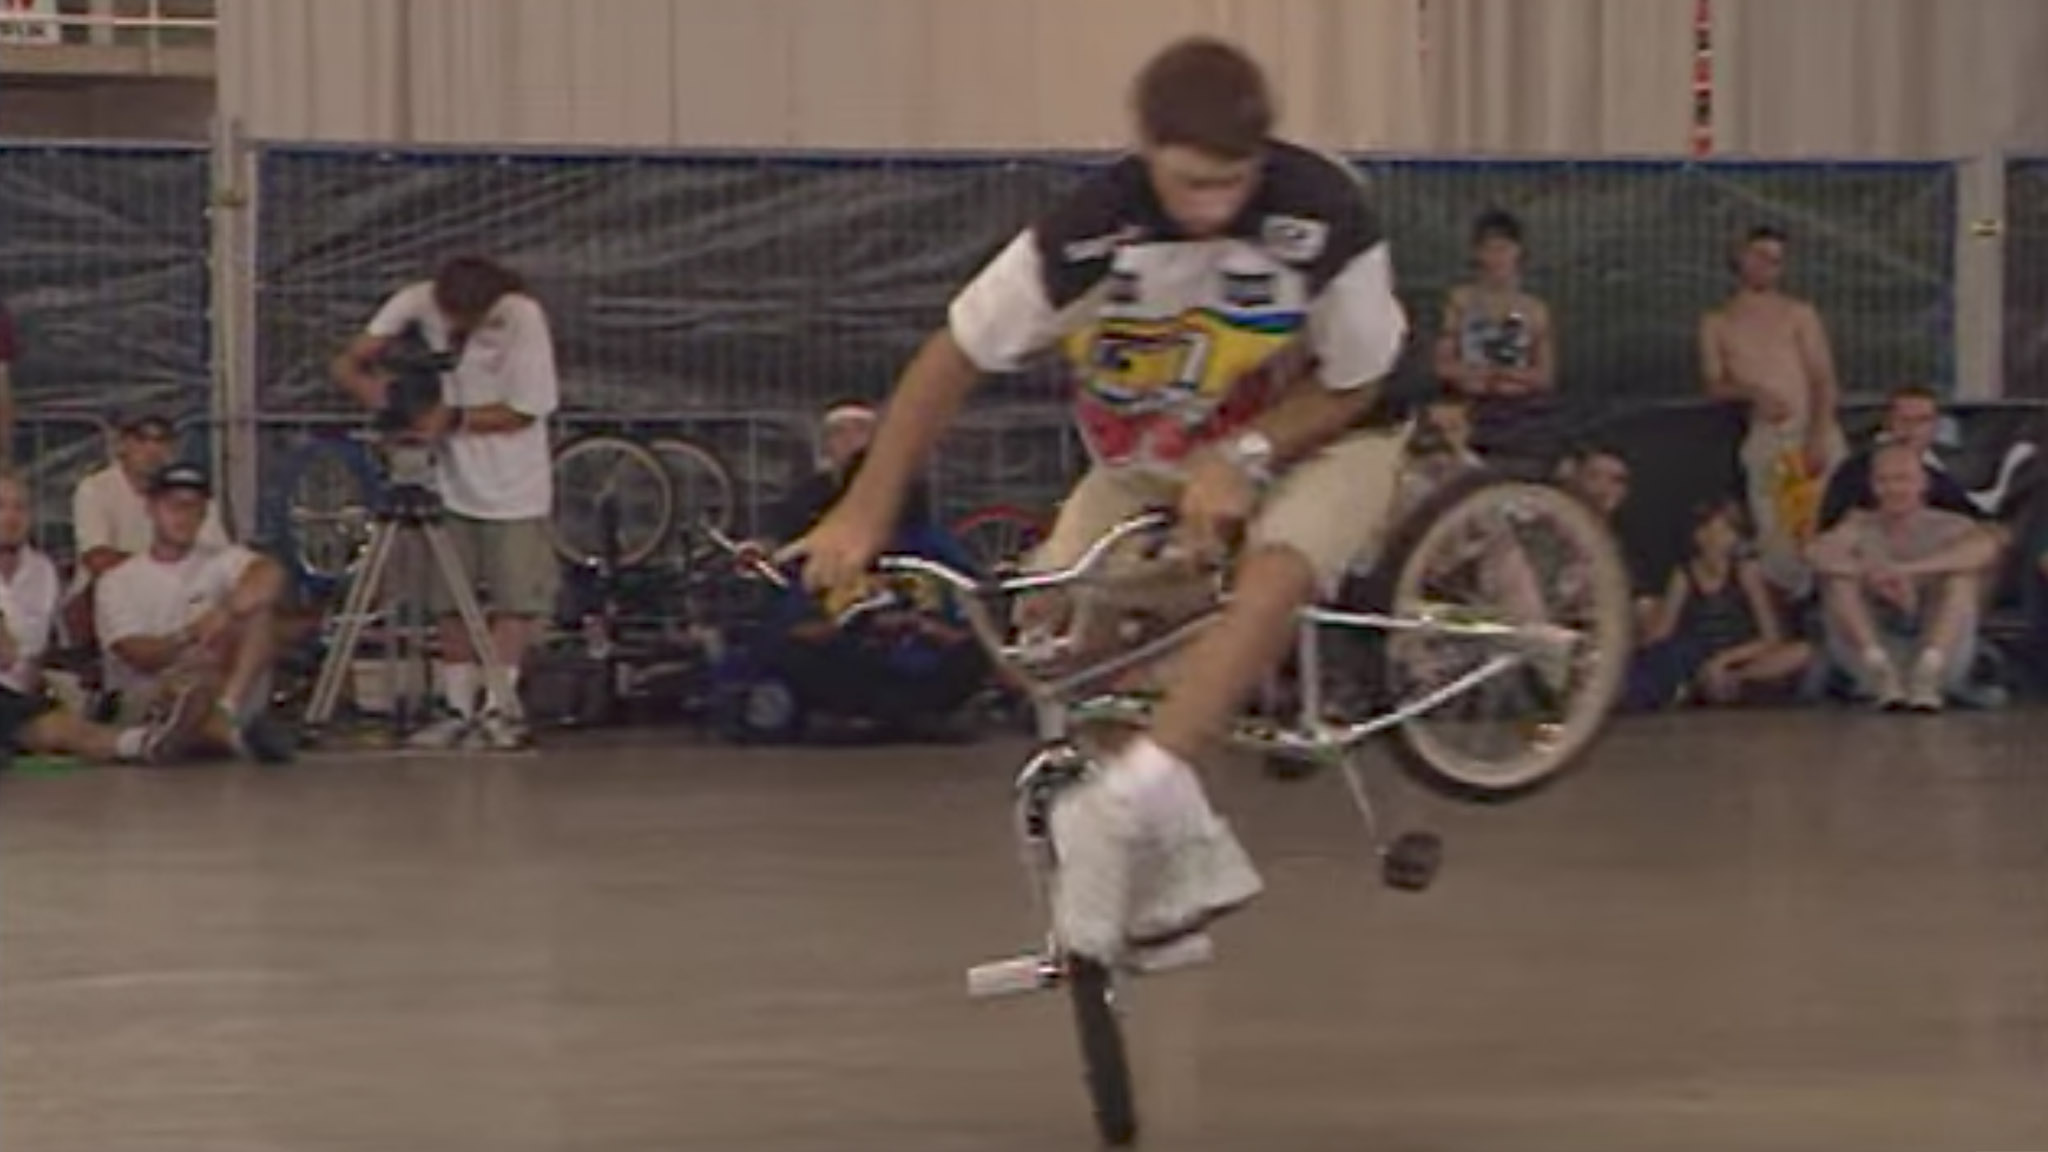 BMX flatland rider Jason Brown, seen here during his run at the 1997 Worlds in Eindhoven.